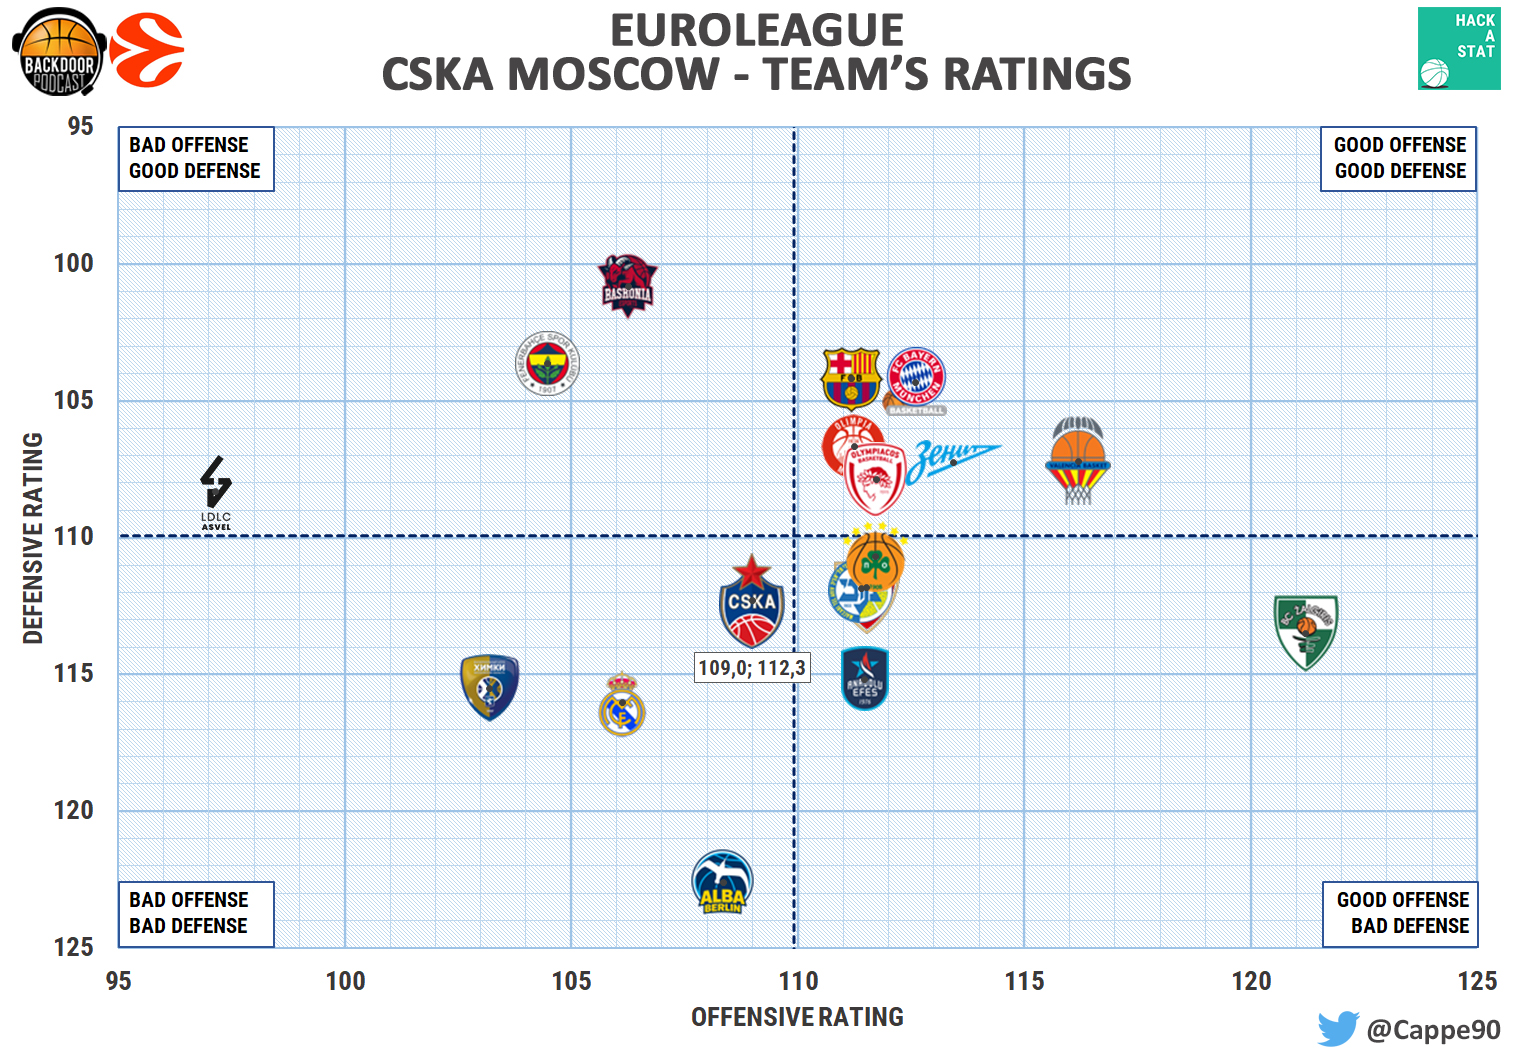 cska moscow ratings